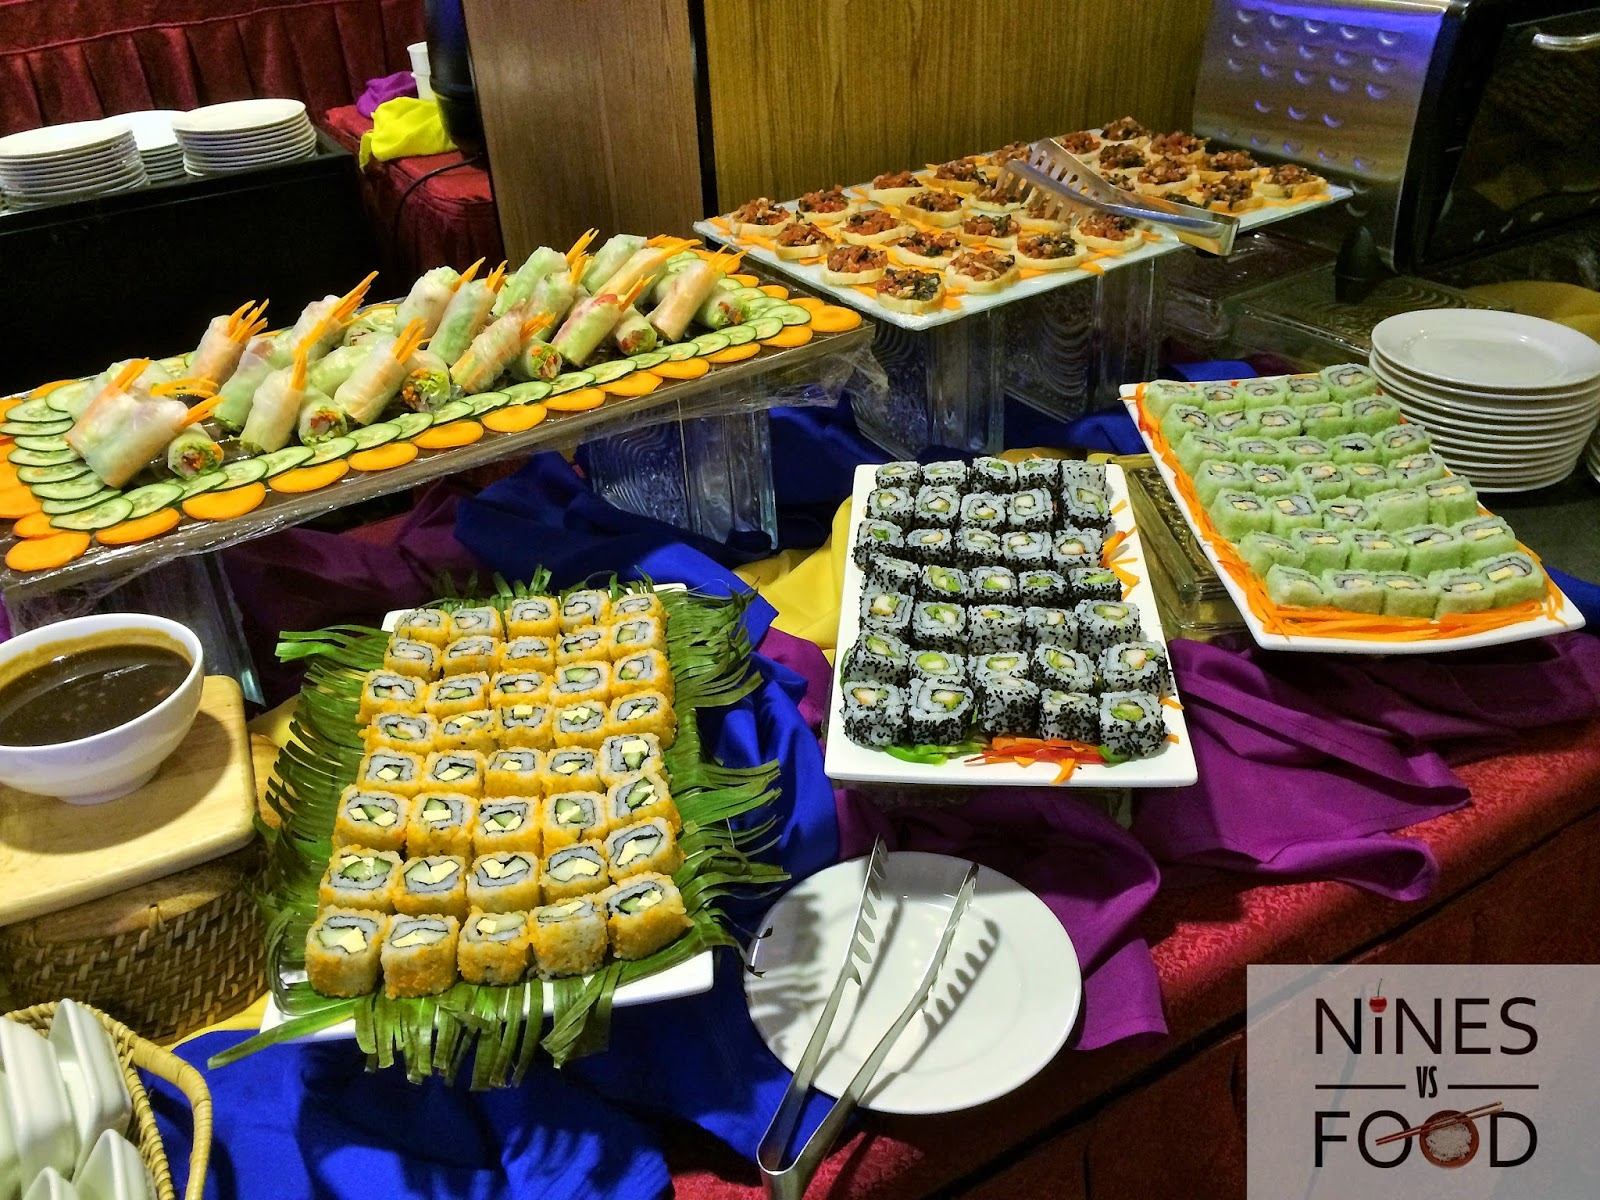 Nines vs. Food - Dinelli Gourmet Weekend Dinner Buffet Le Monet Hotel Baguio-9.jpg